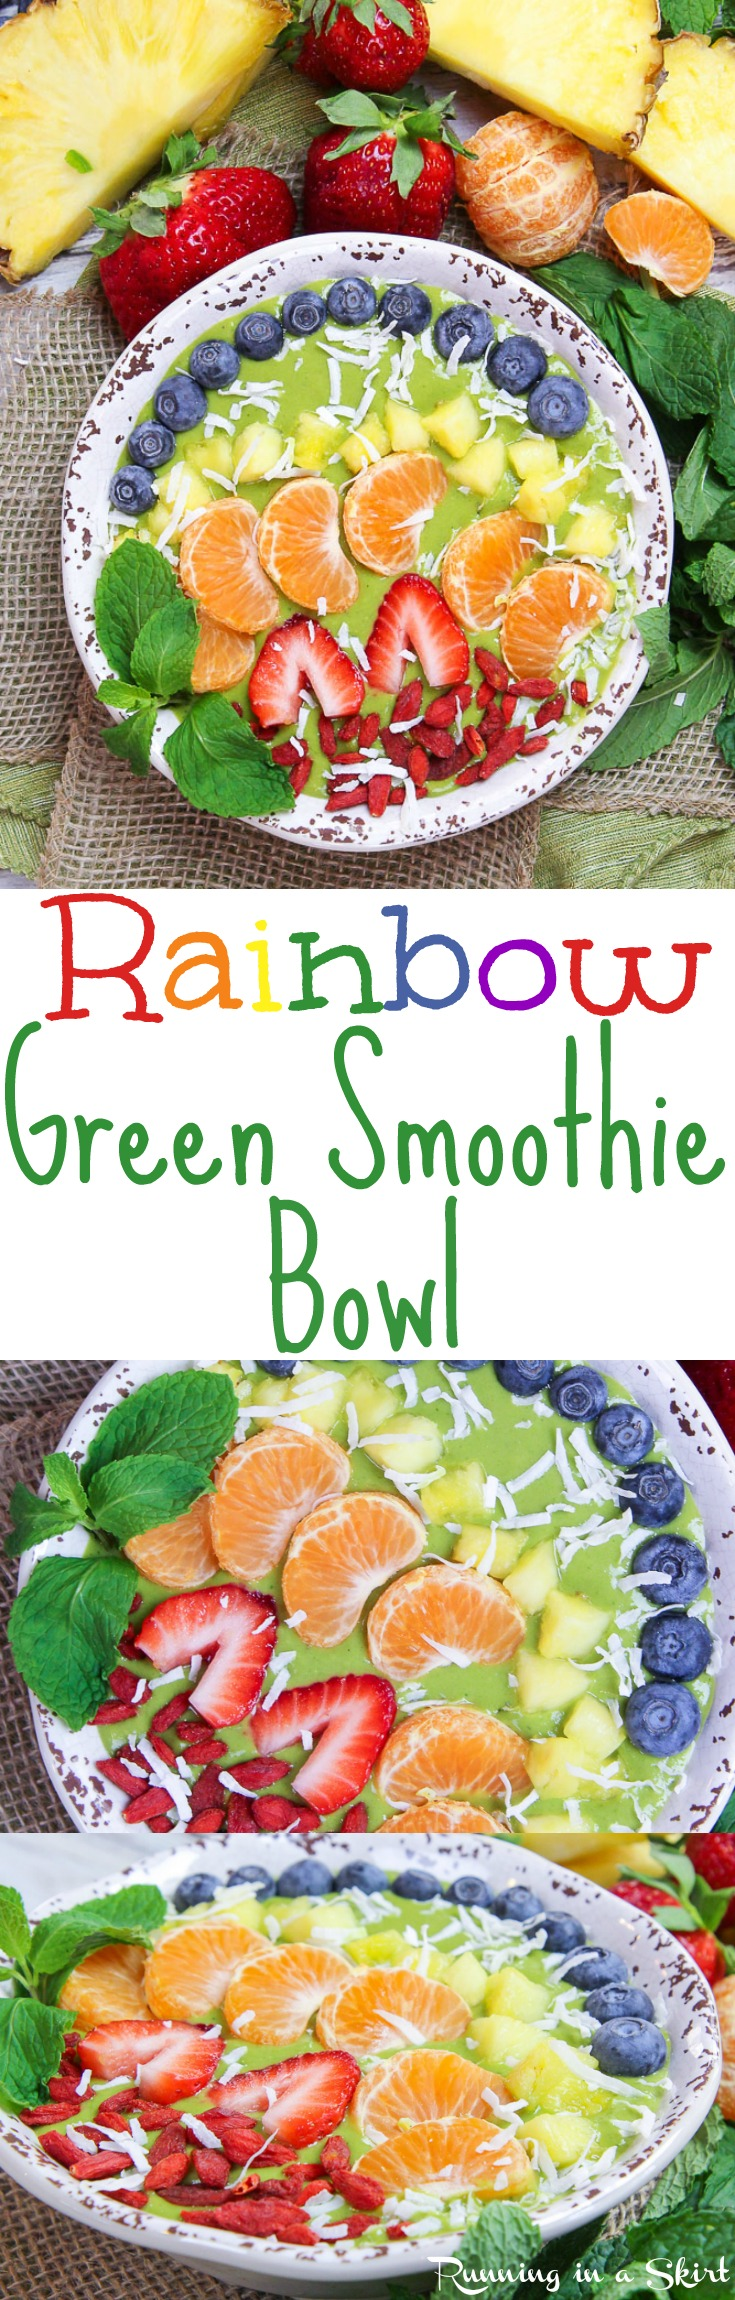 Rainbow Green Smoothie Bowl recipe. This healthy, vegan, easy breakfast uses mango plus spinach or kale! The fruit and berries toppings make the rainbow. Includes frozen banana but there is also a no banana option. Raw Vegan, Vegetarian, Clean Eating, Gluten Free & Dairy Free / Running in a Skirt via @juliewunder